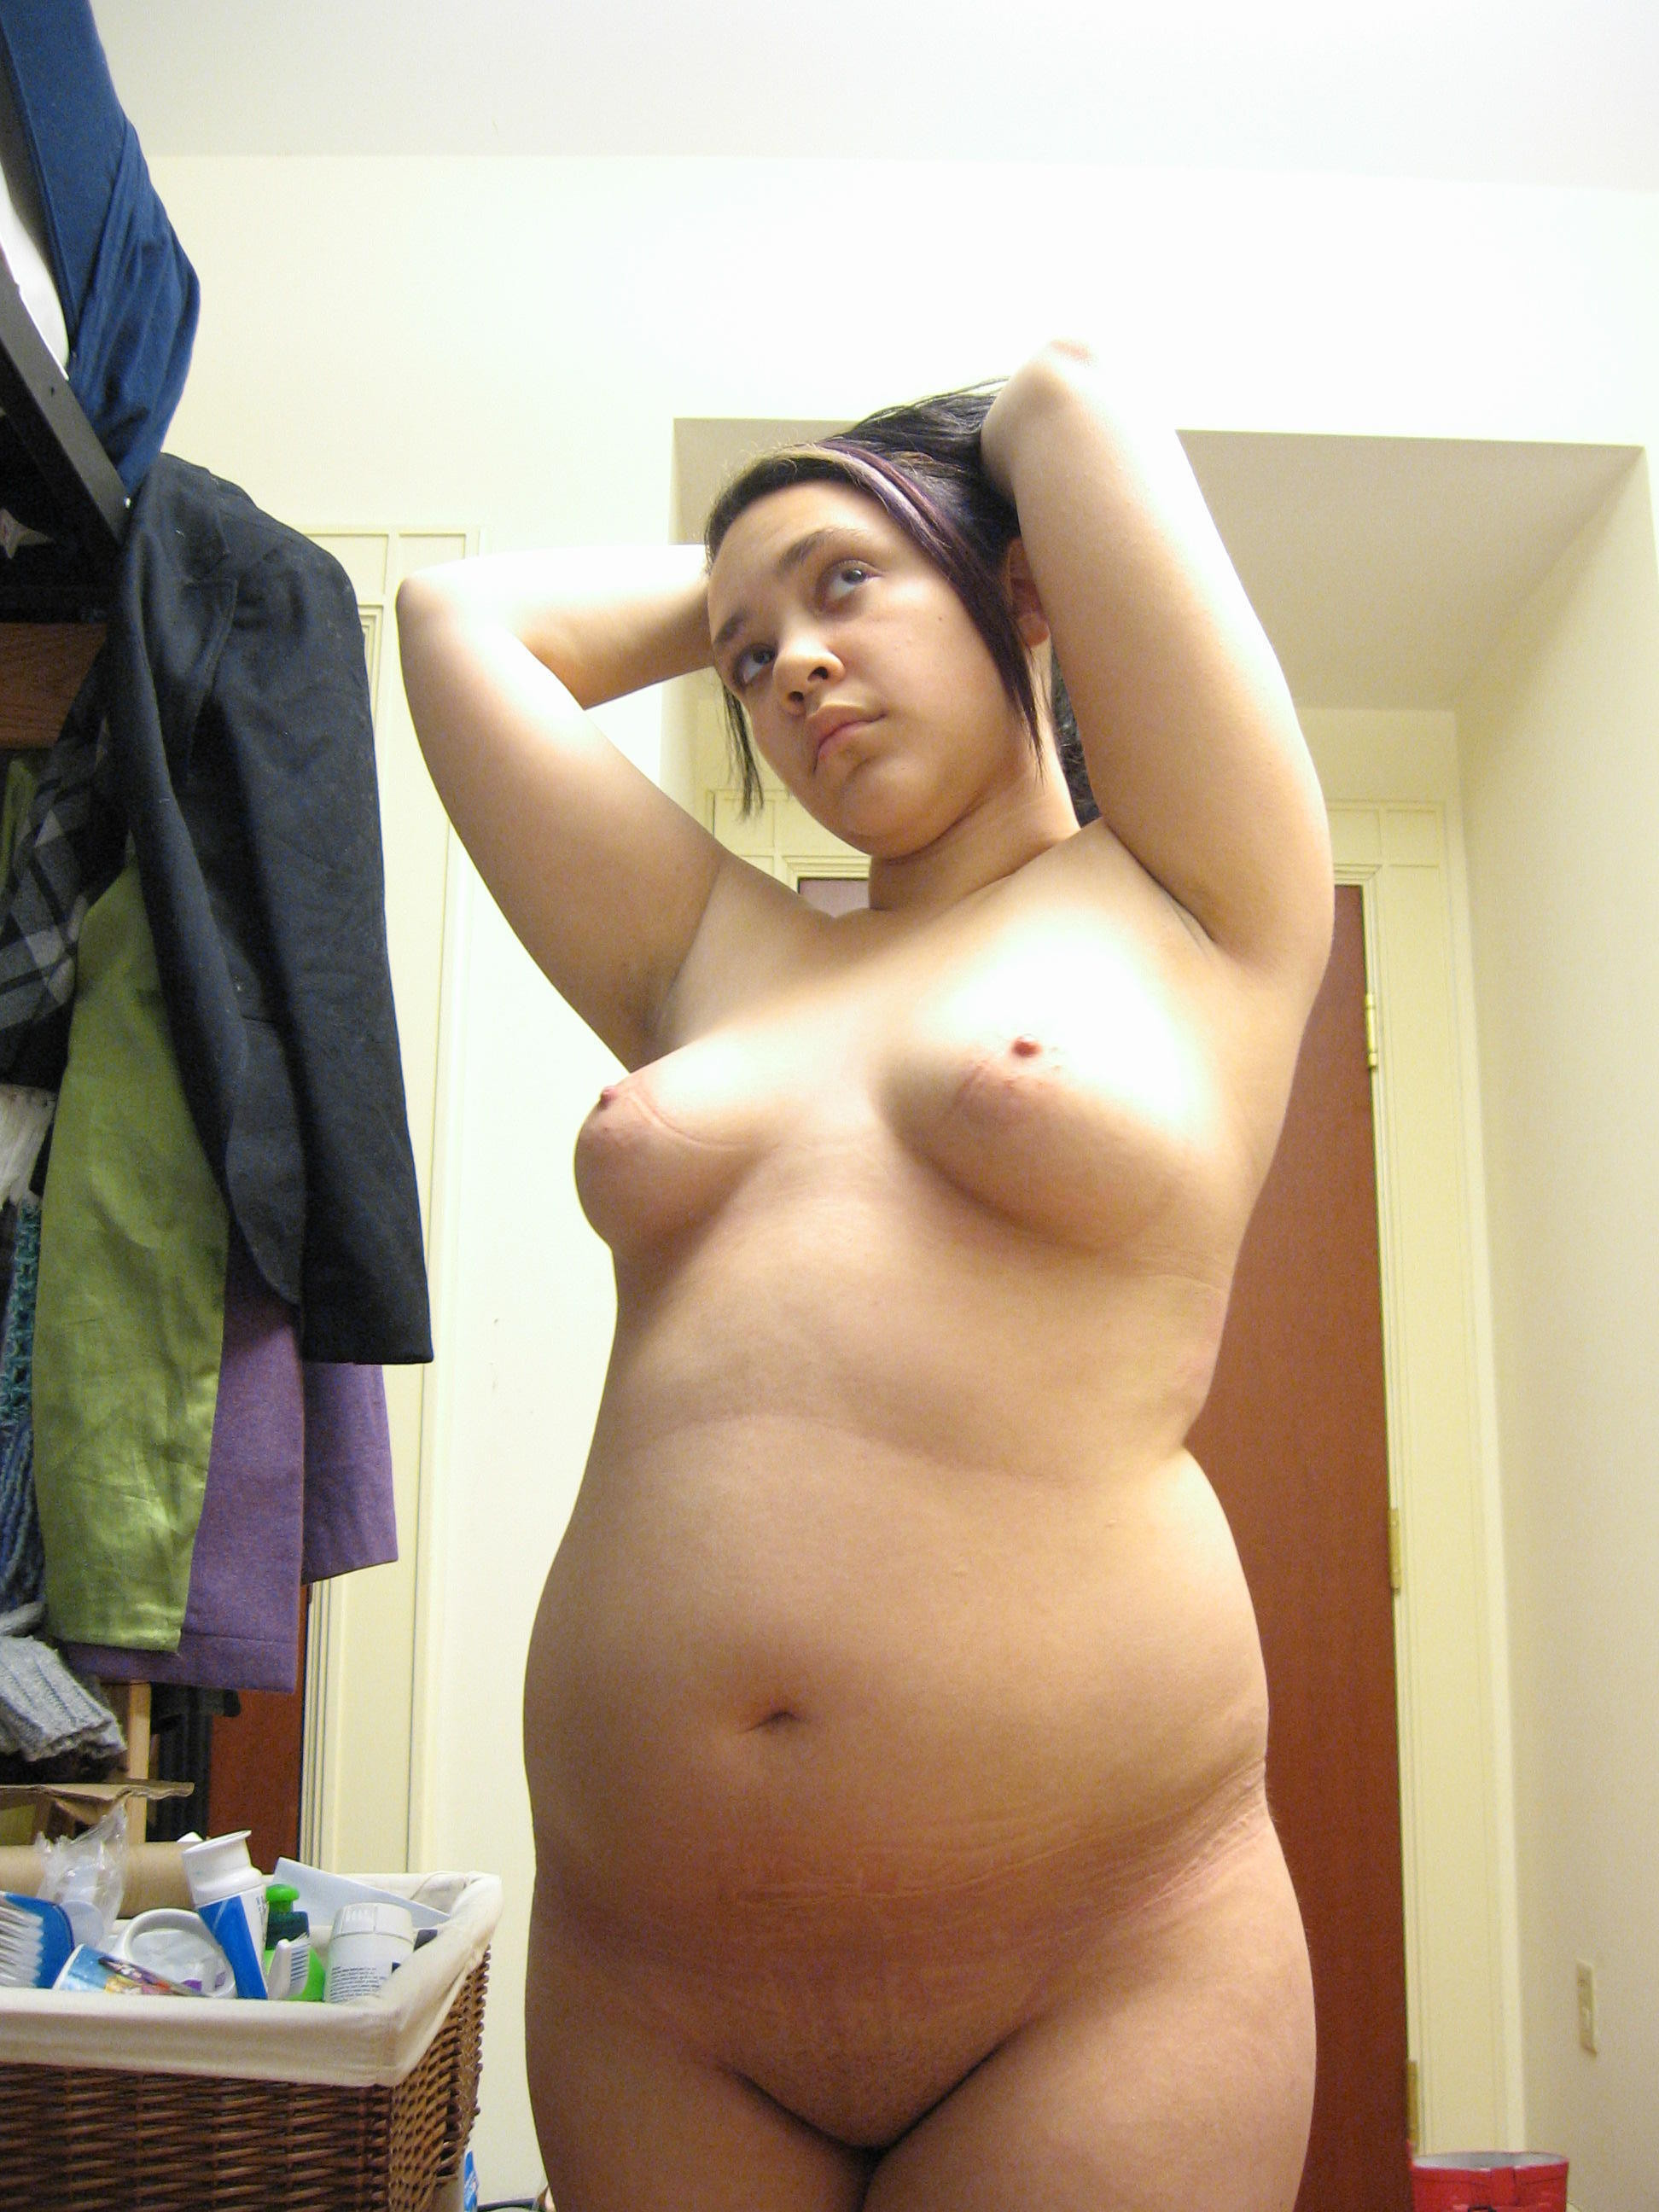 Very hot chubby with small boobs surprised